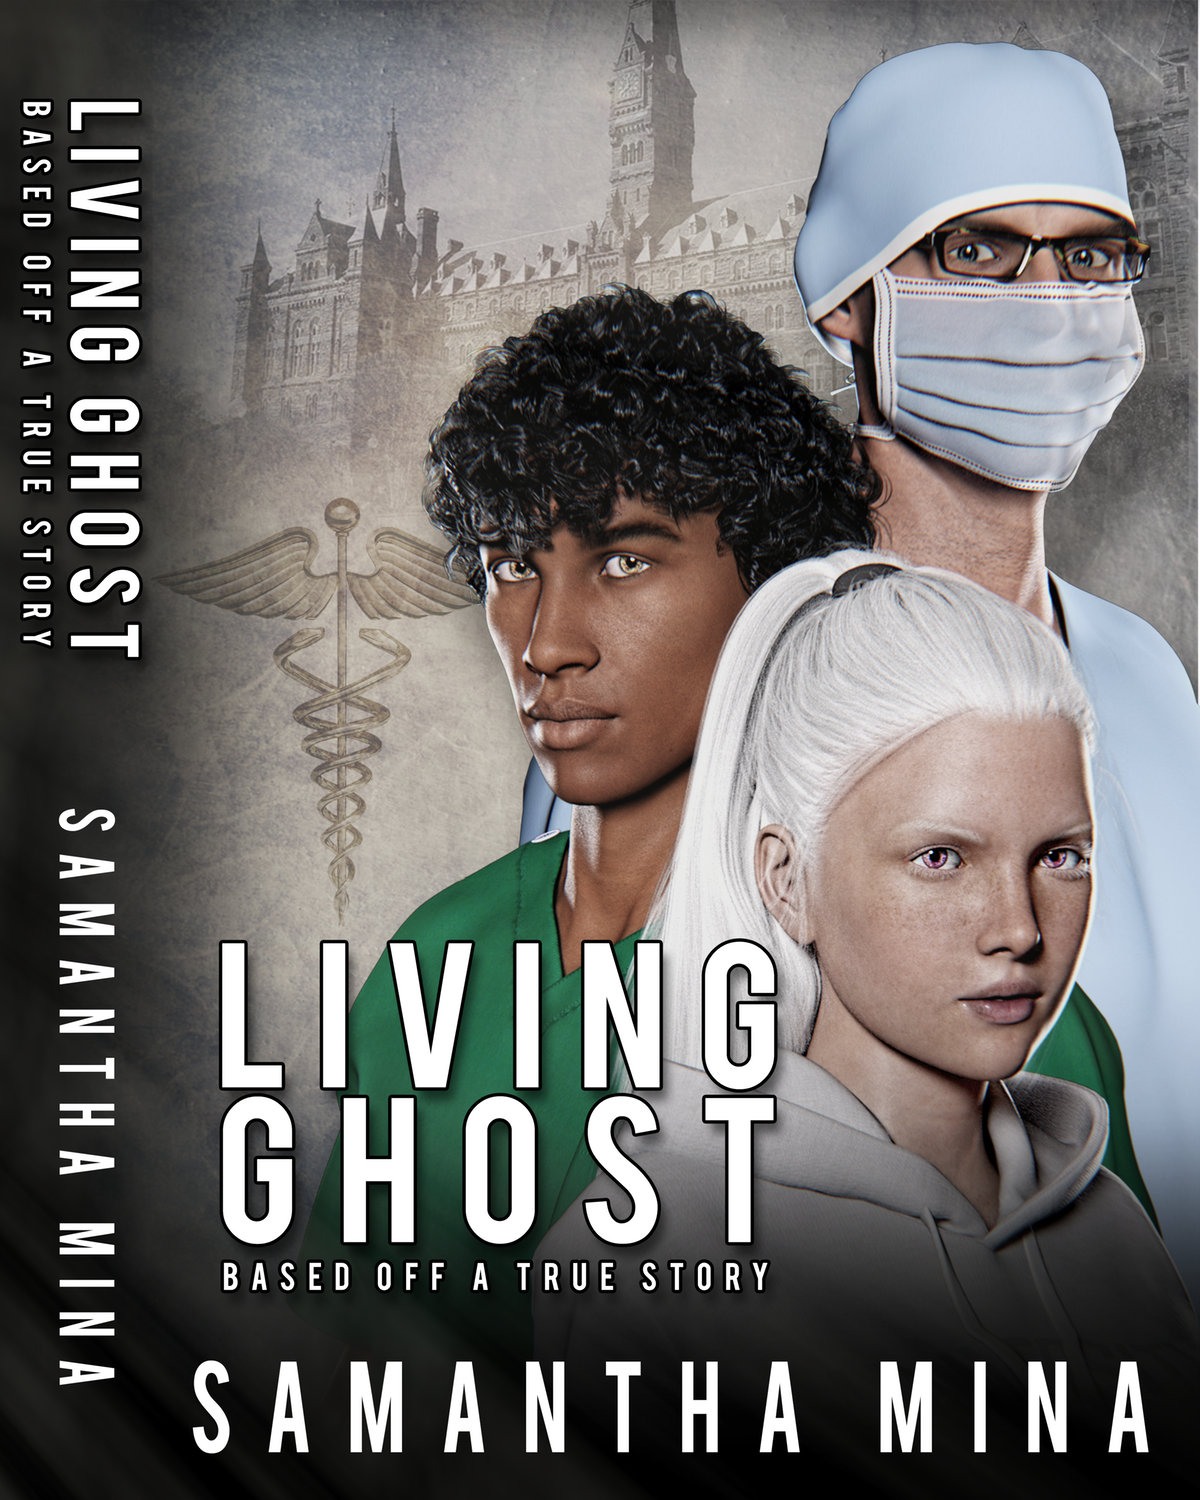 """Book Cover and Spine for: """"LIVING GHOST - A Medical Thriller Based on a True Story - by Samantha Mina"""""""